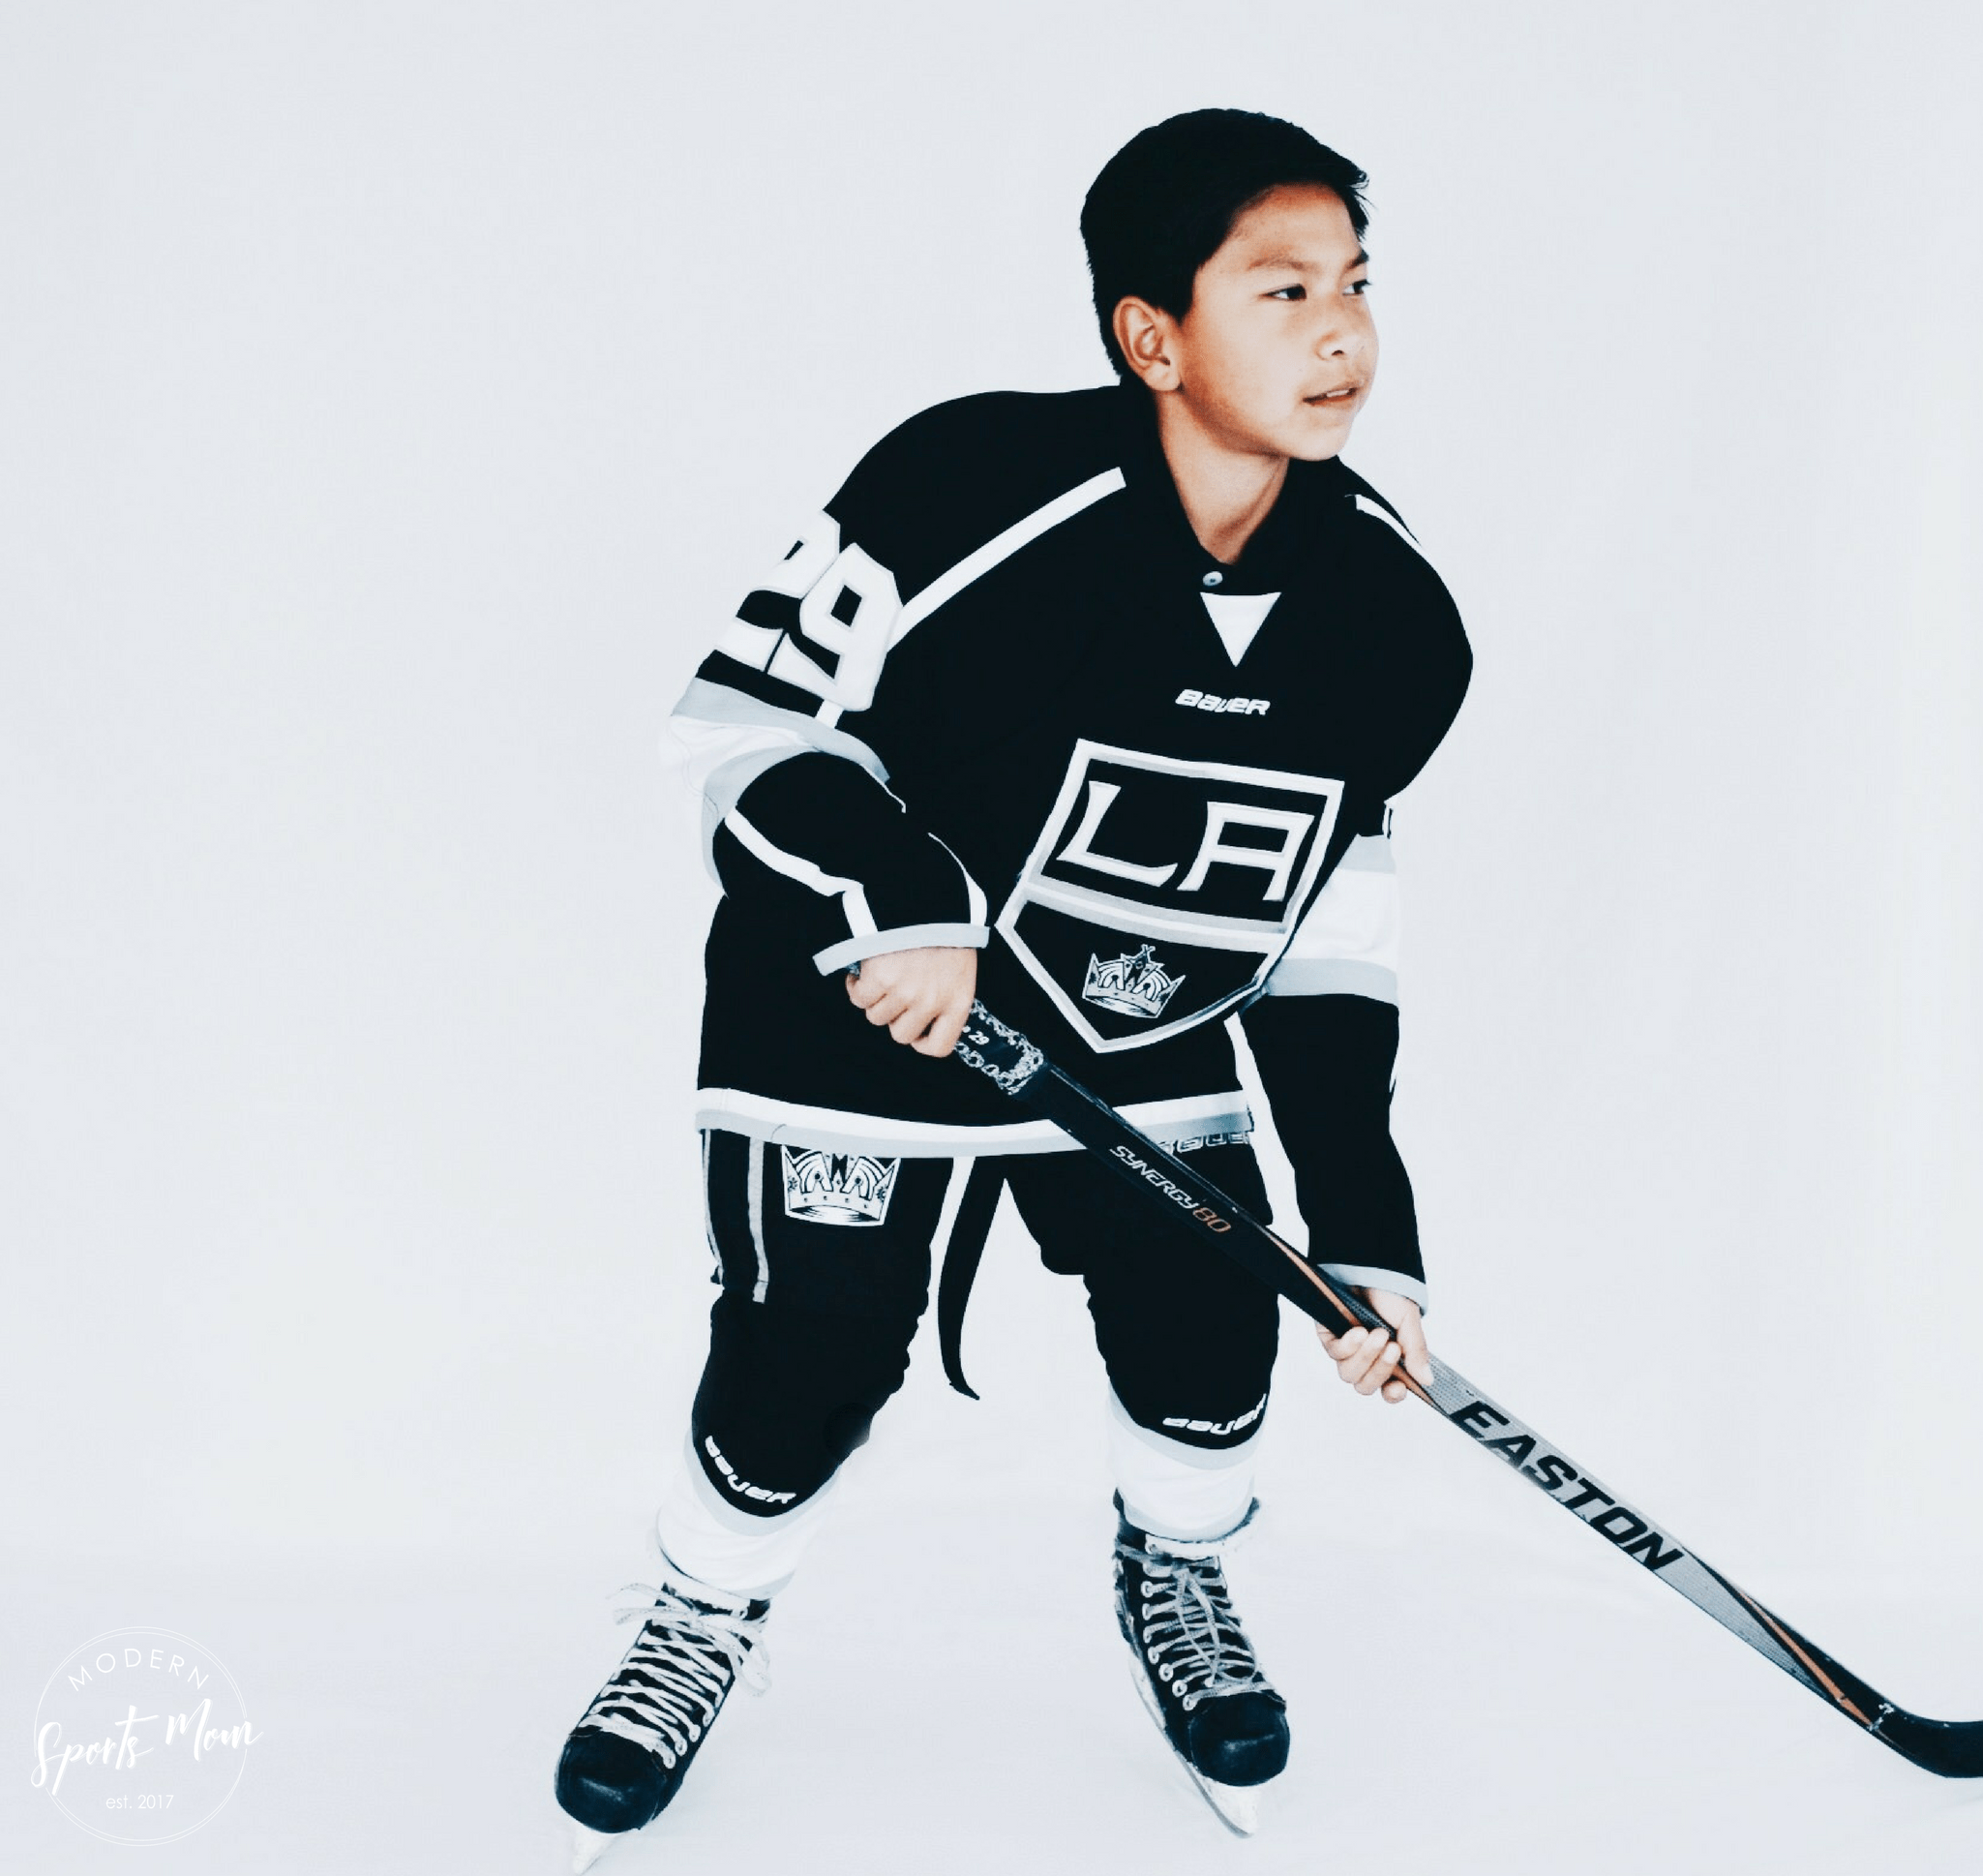 Youth hockey player.